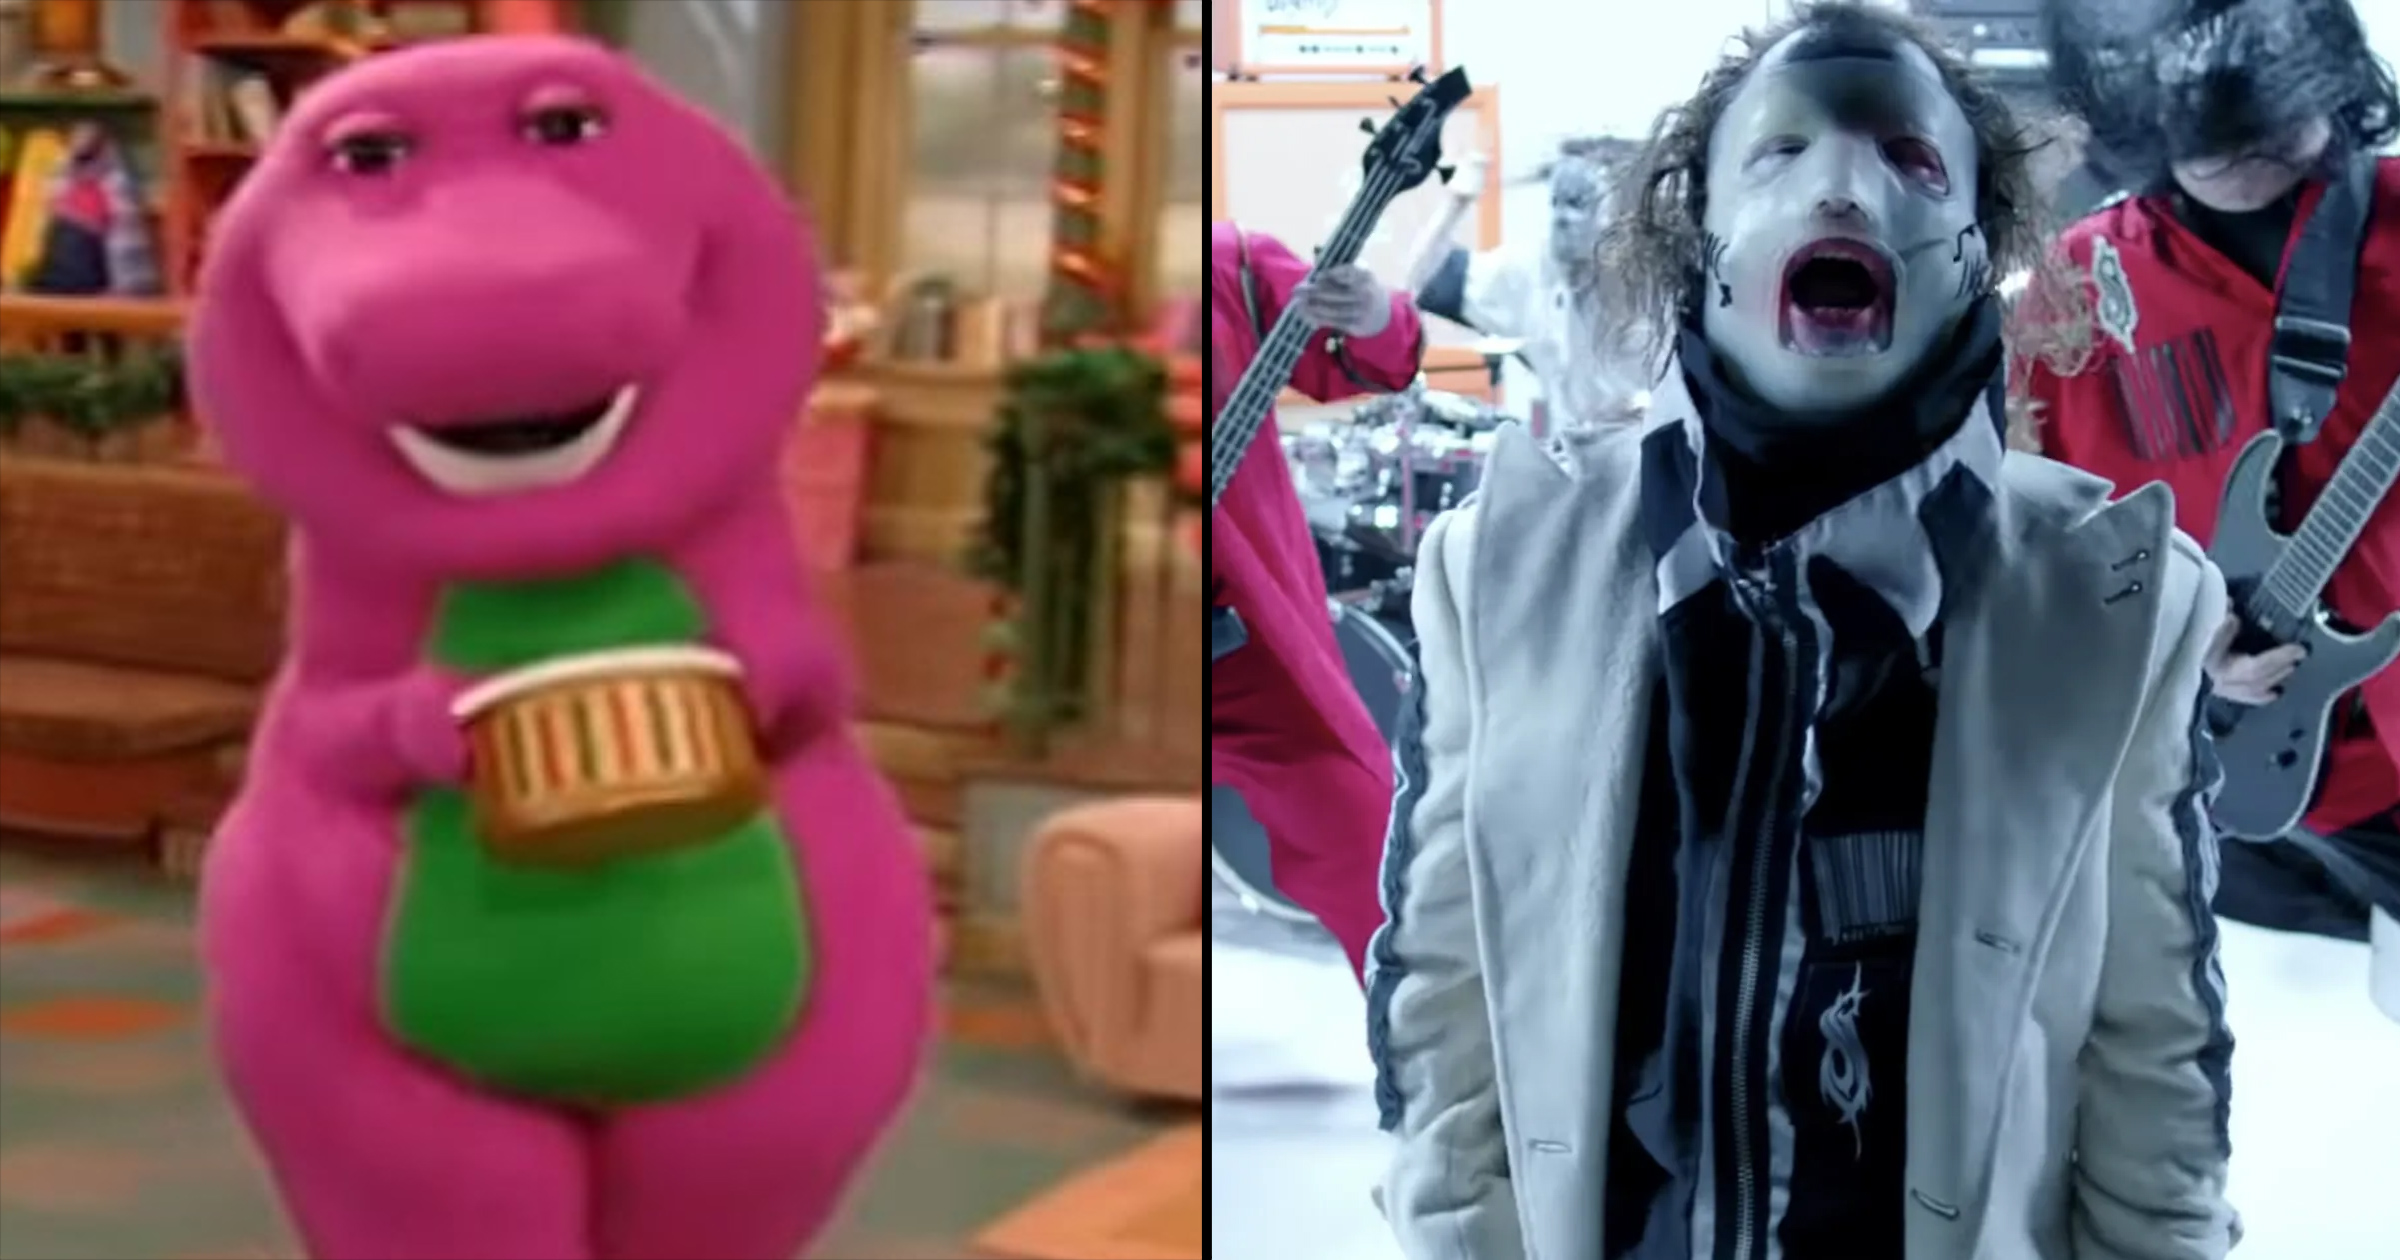 SLIPKNOT Mashed Up With The Barney Theme Song Is Too Funny